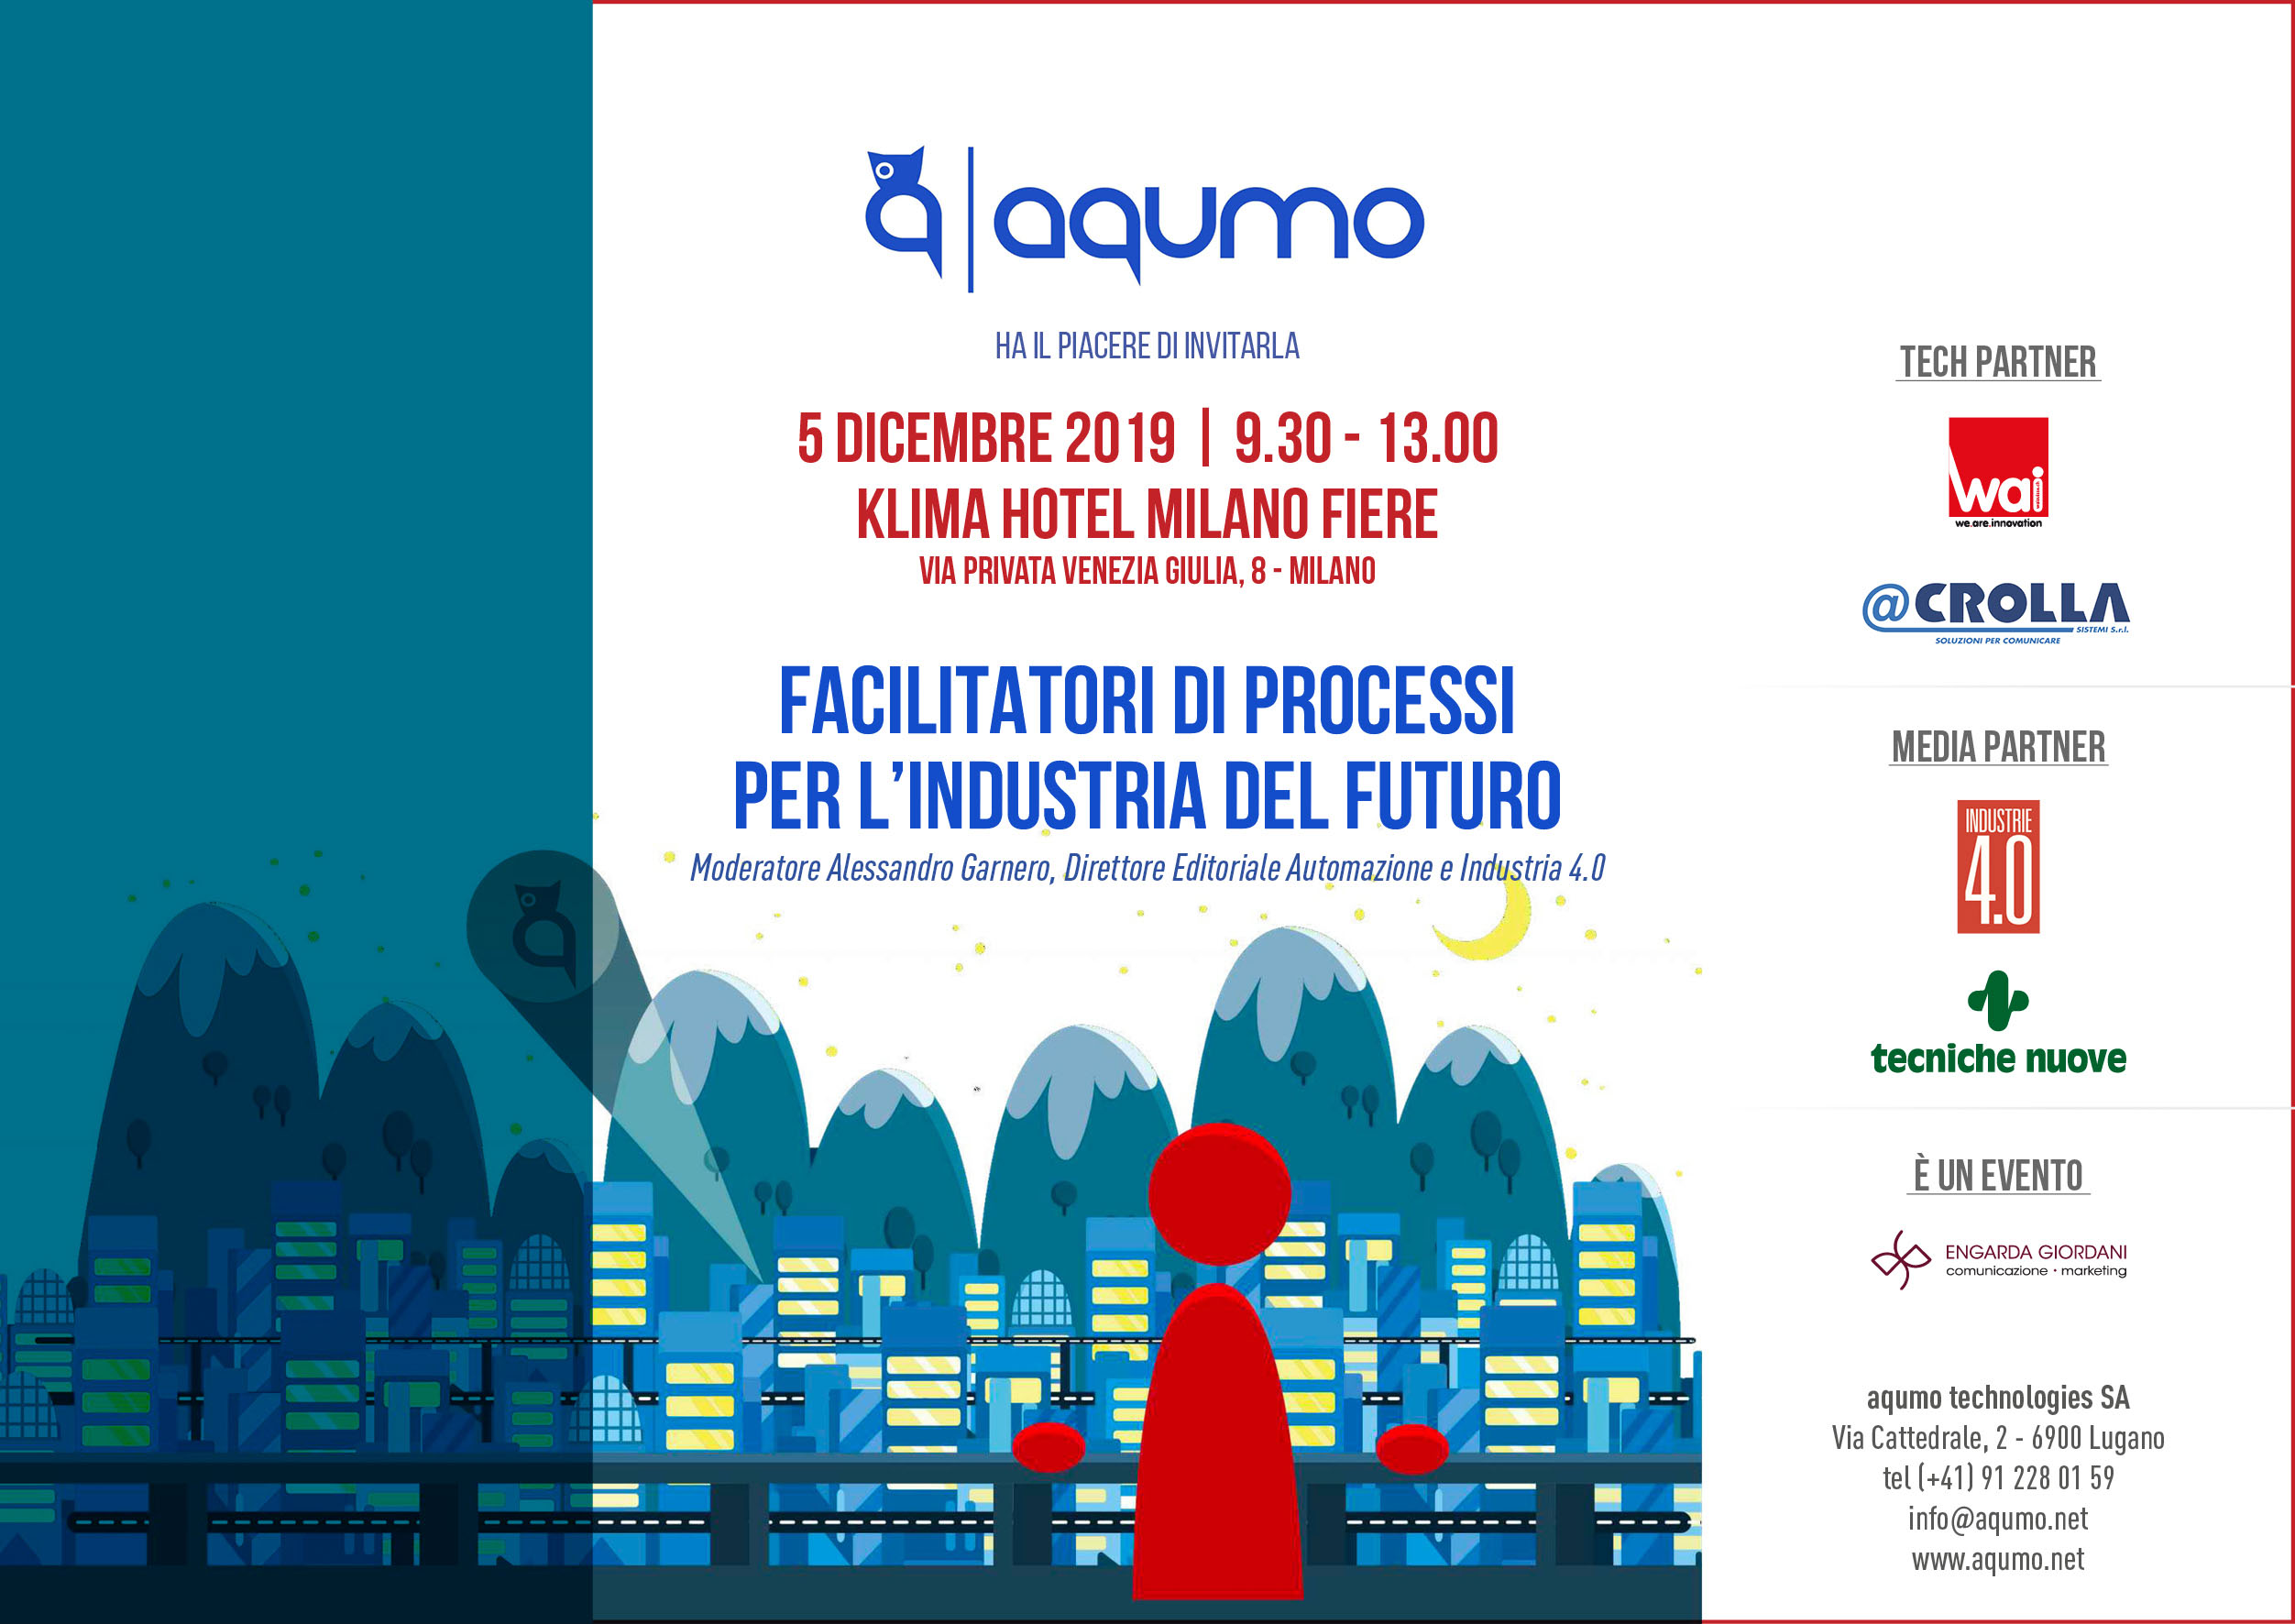 Facilitatori di processi per l'industria del futuro, il workshop gratuito dedicato all'Industria 4.0